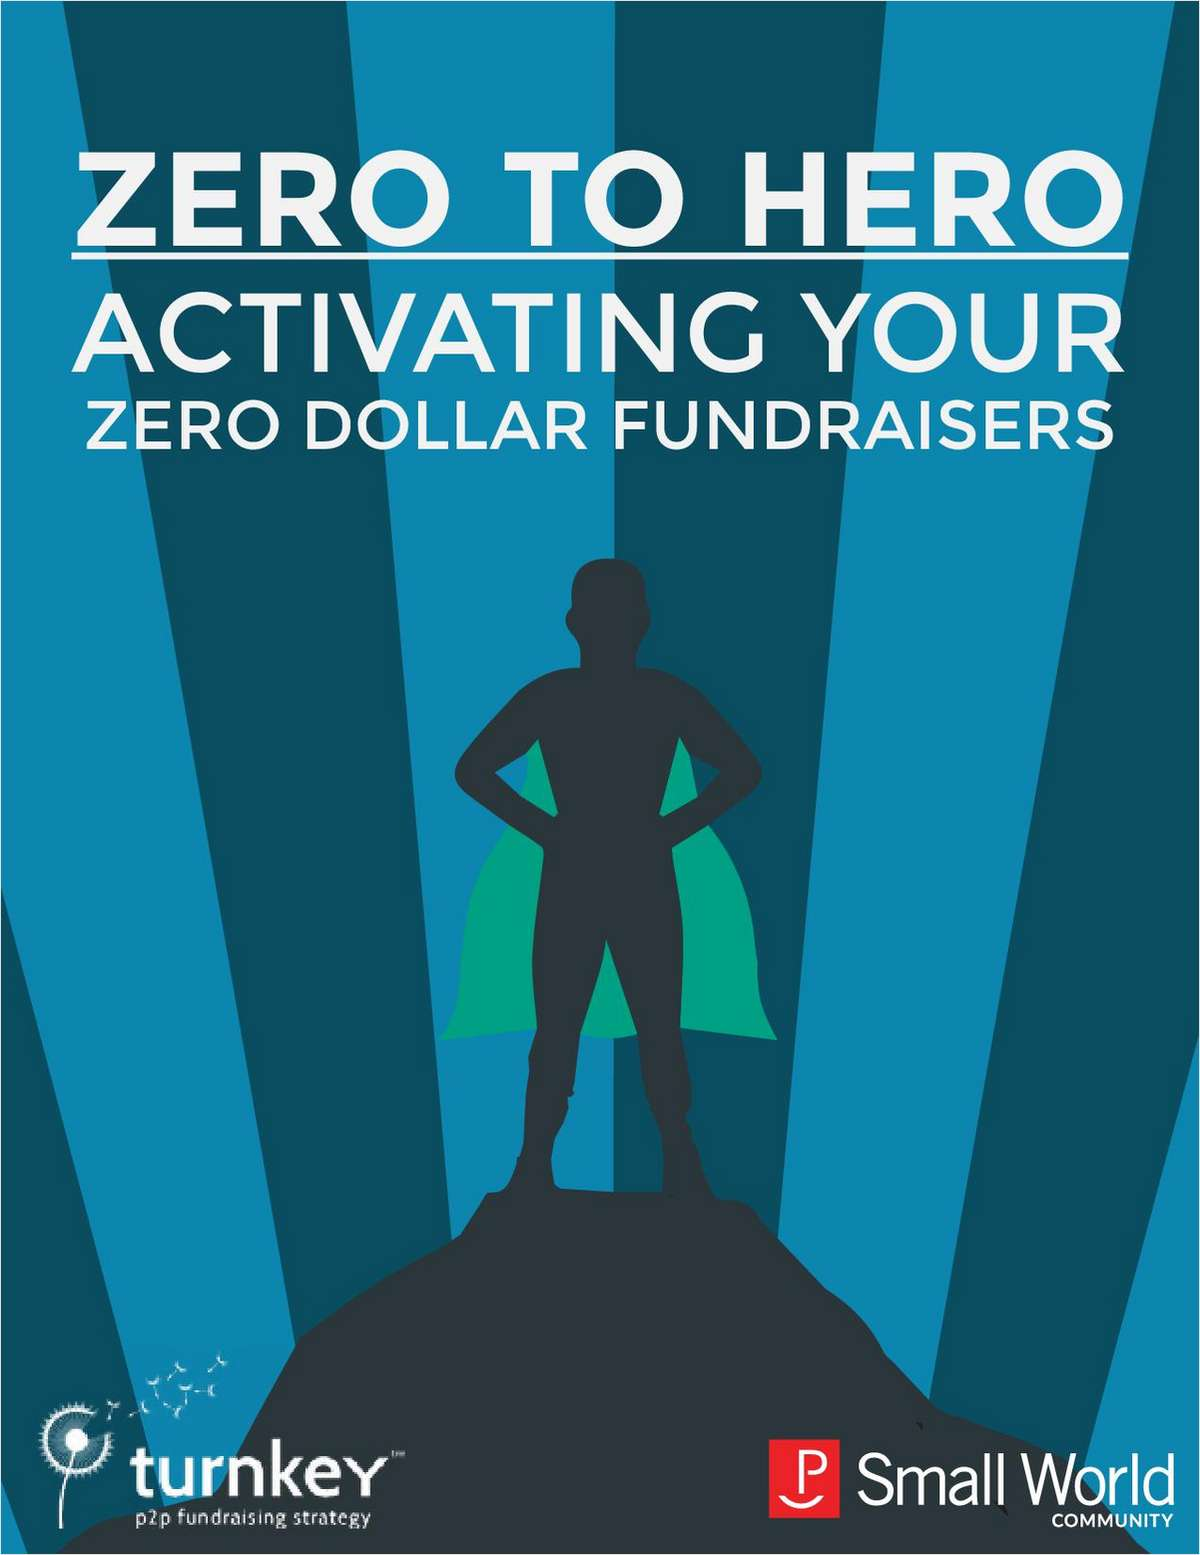 Zero to Hero: Activate Your Zero Dollar Fundraisers